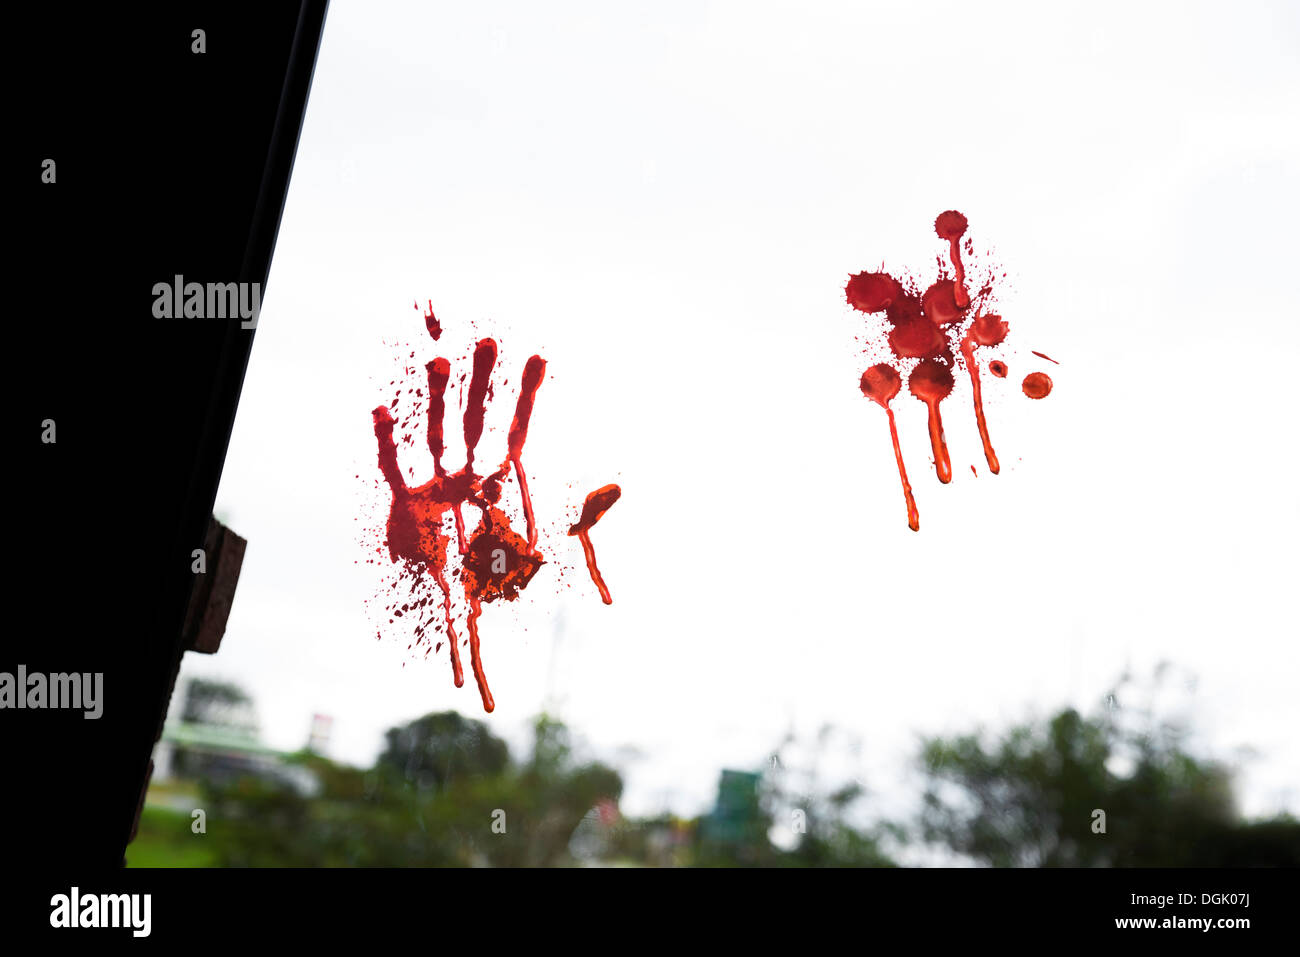 Bloody handprint on glass door Stock Photo: 61882902 - Alamy